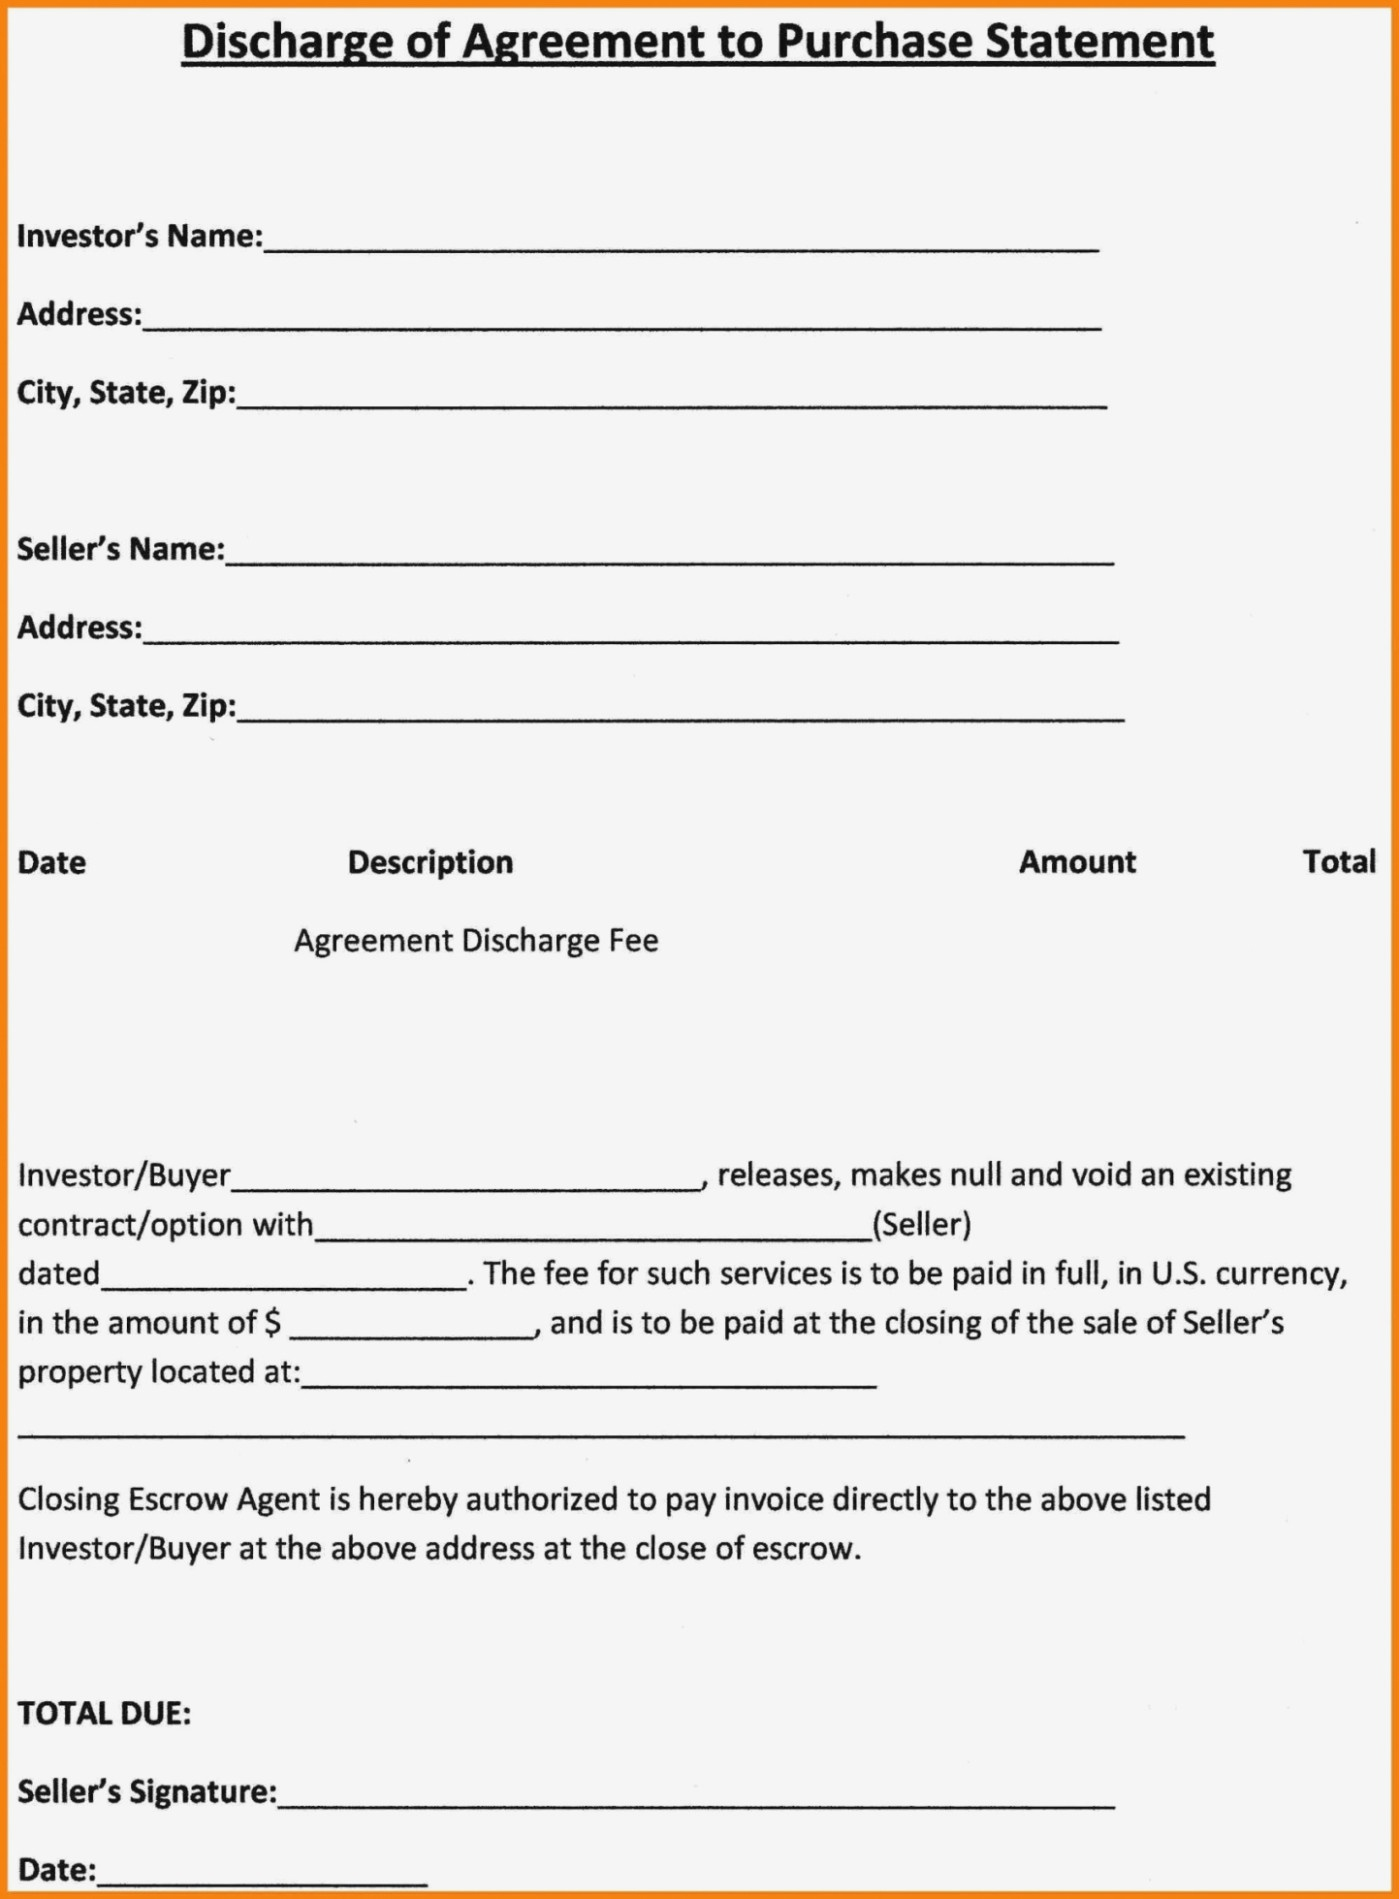 13 Latest Tips You Can Learn When Attending | Form Information - Free Printable Purchase Agreement Template